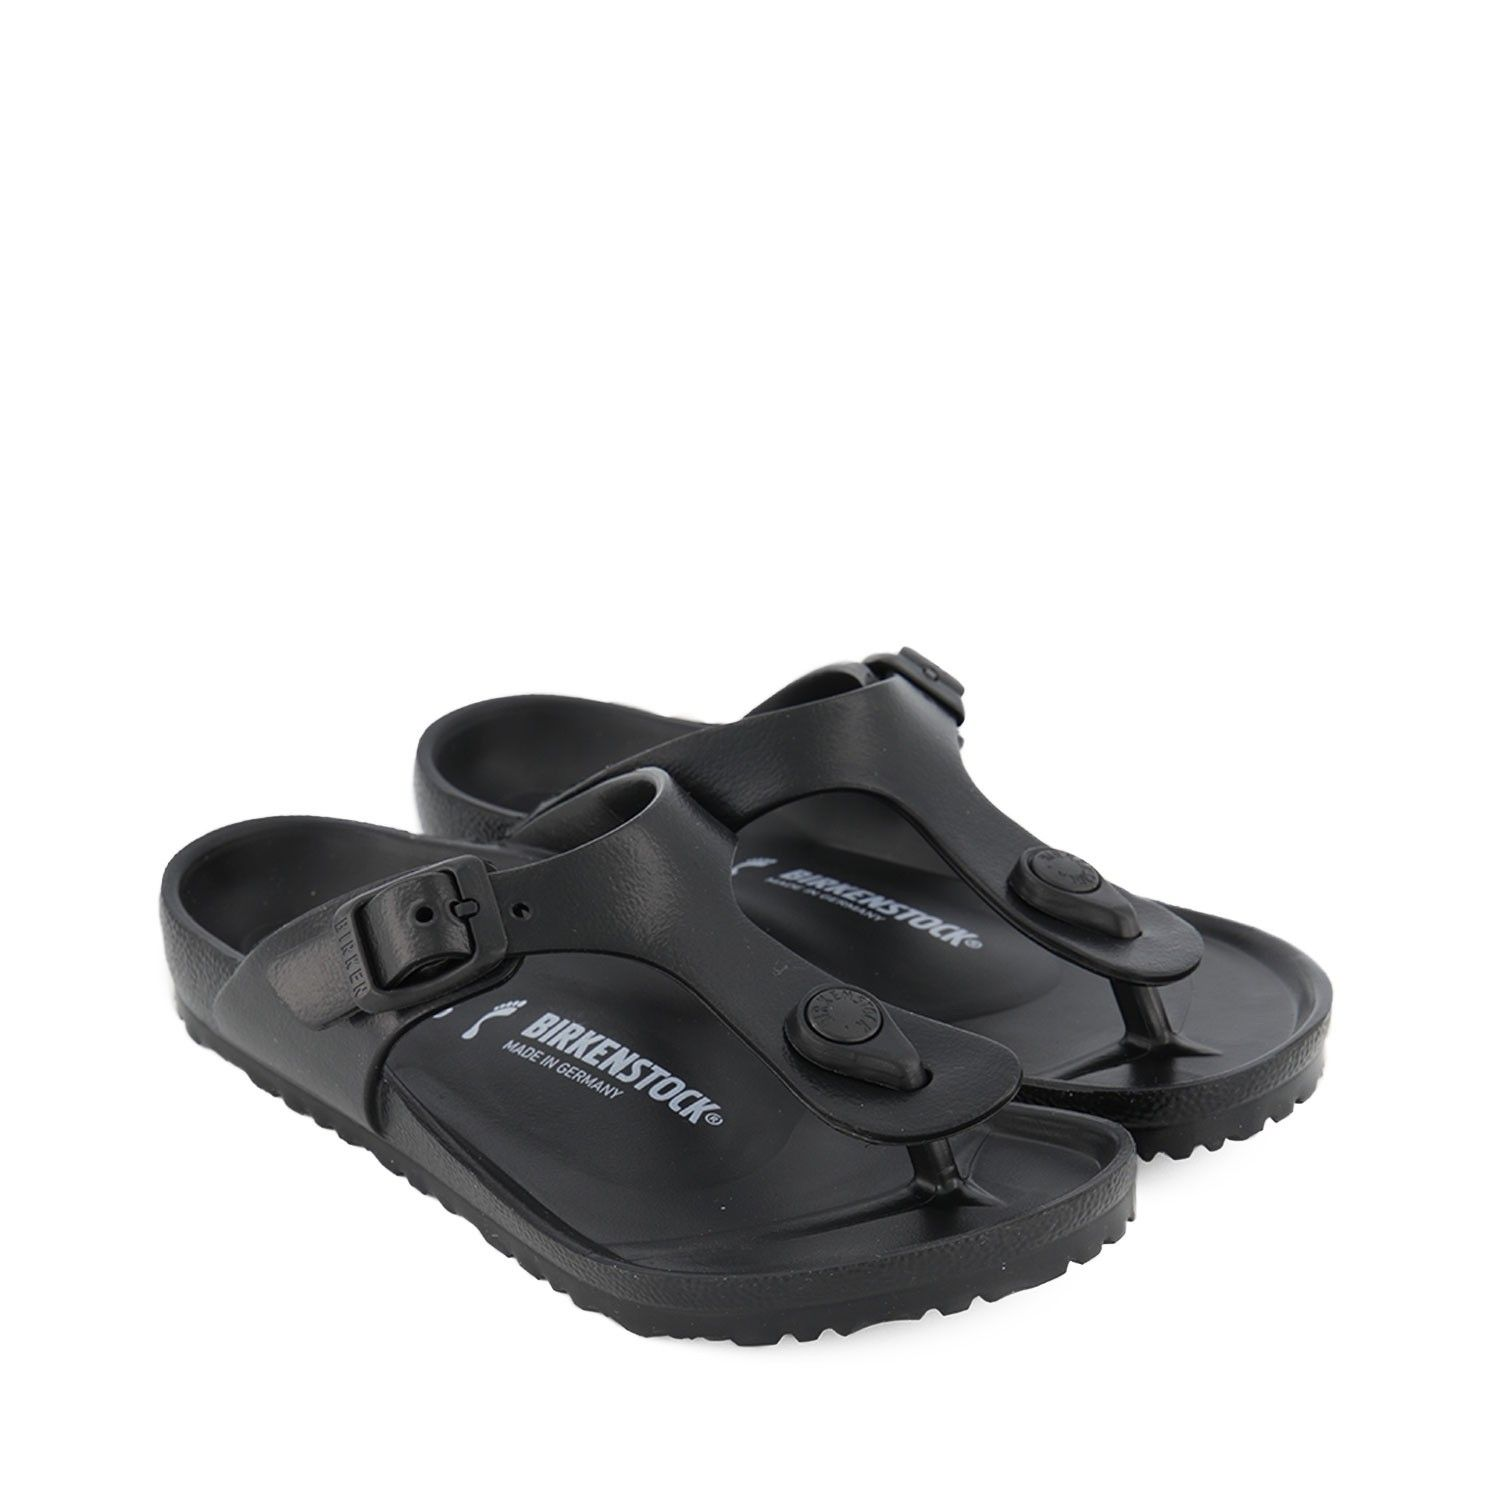 Picture of Birkenstock 128423 kids flipflops black